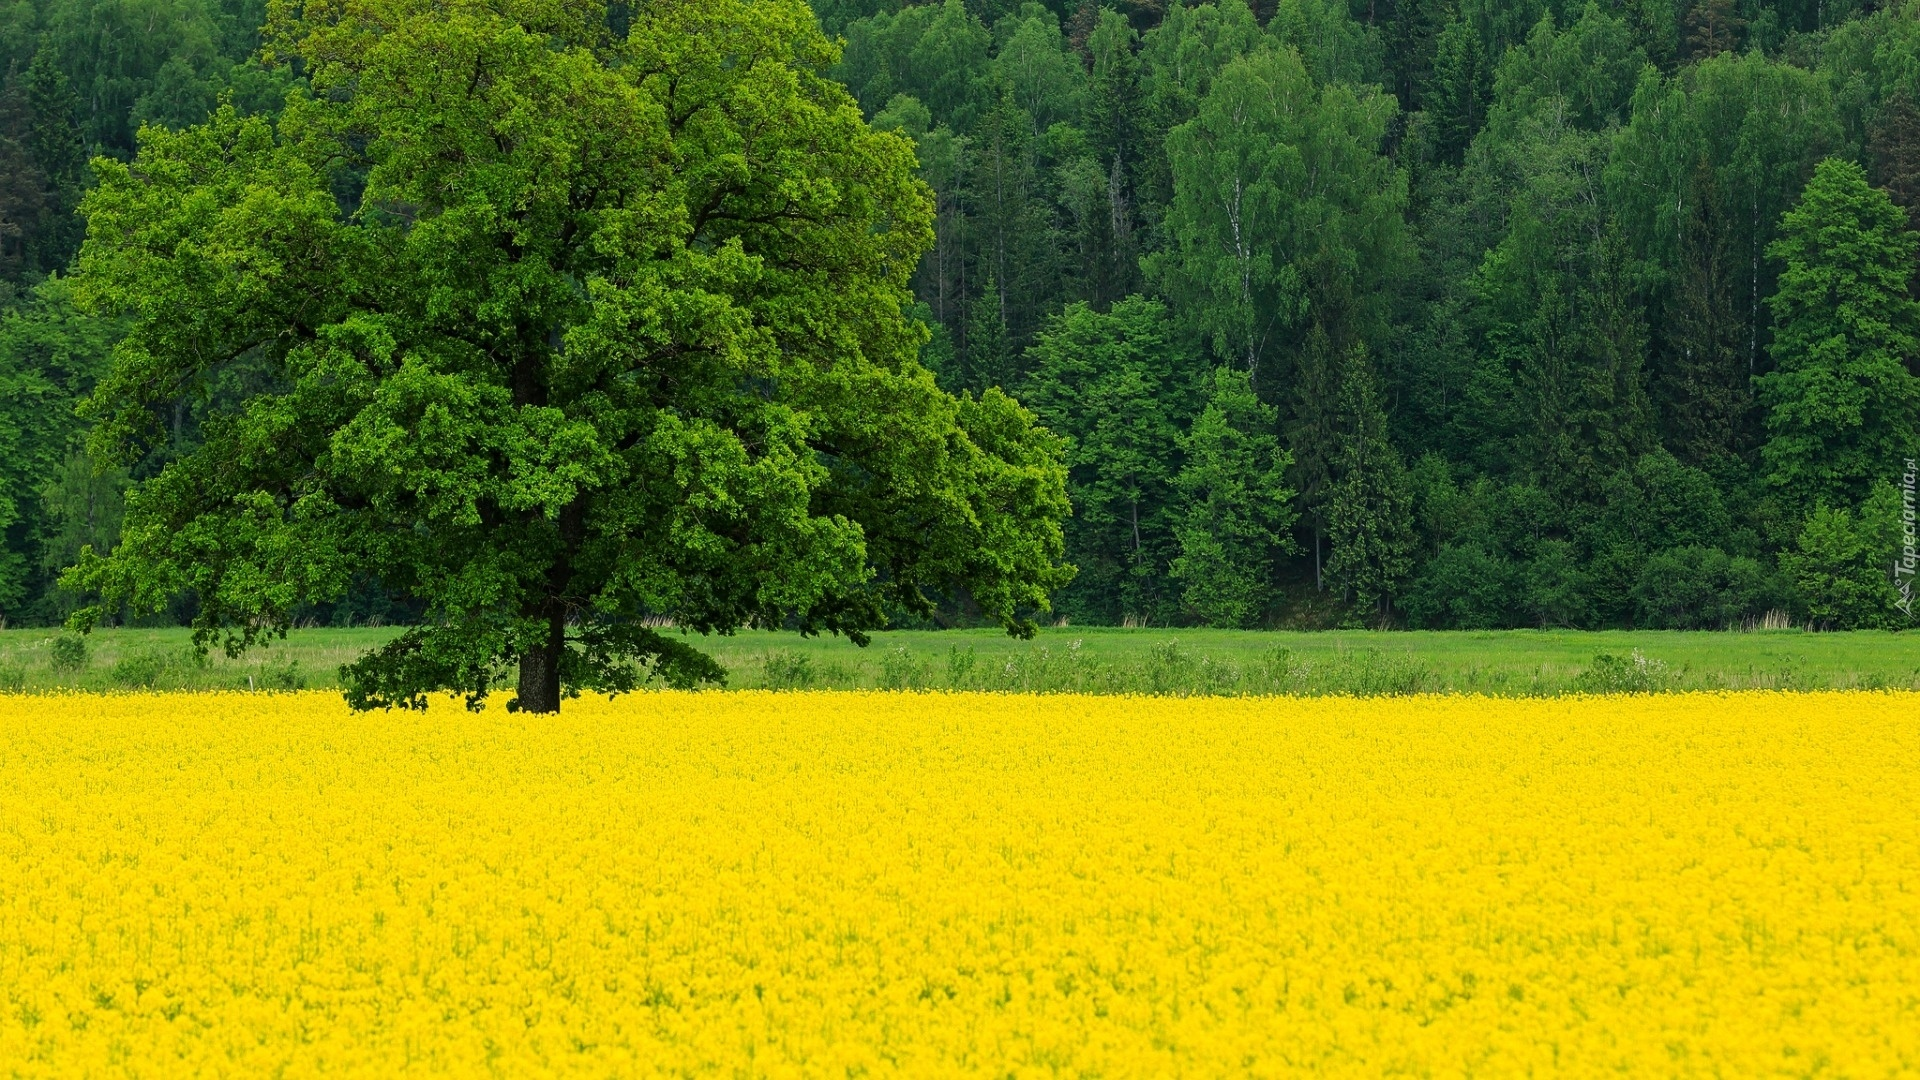 Yellow Nature best picture